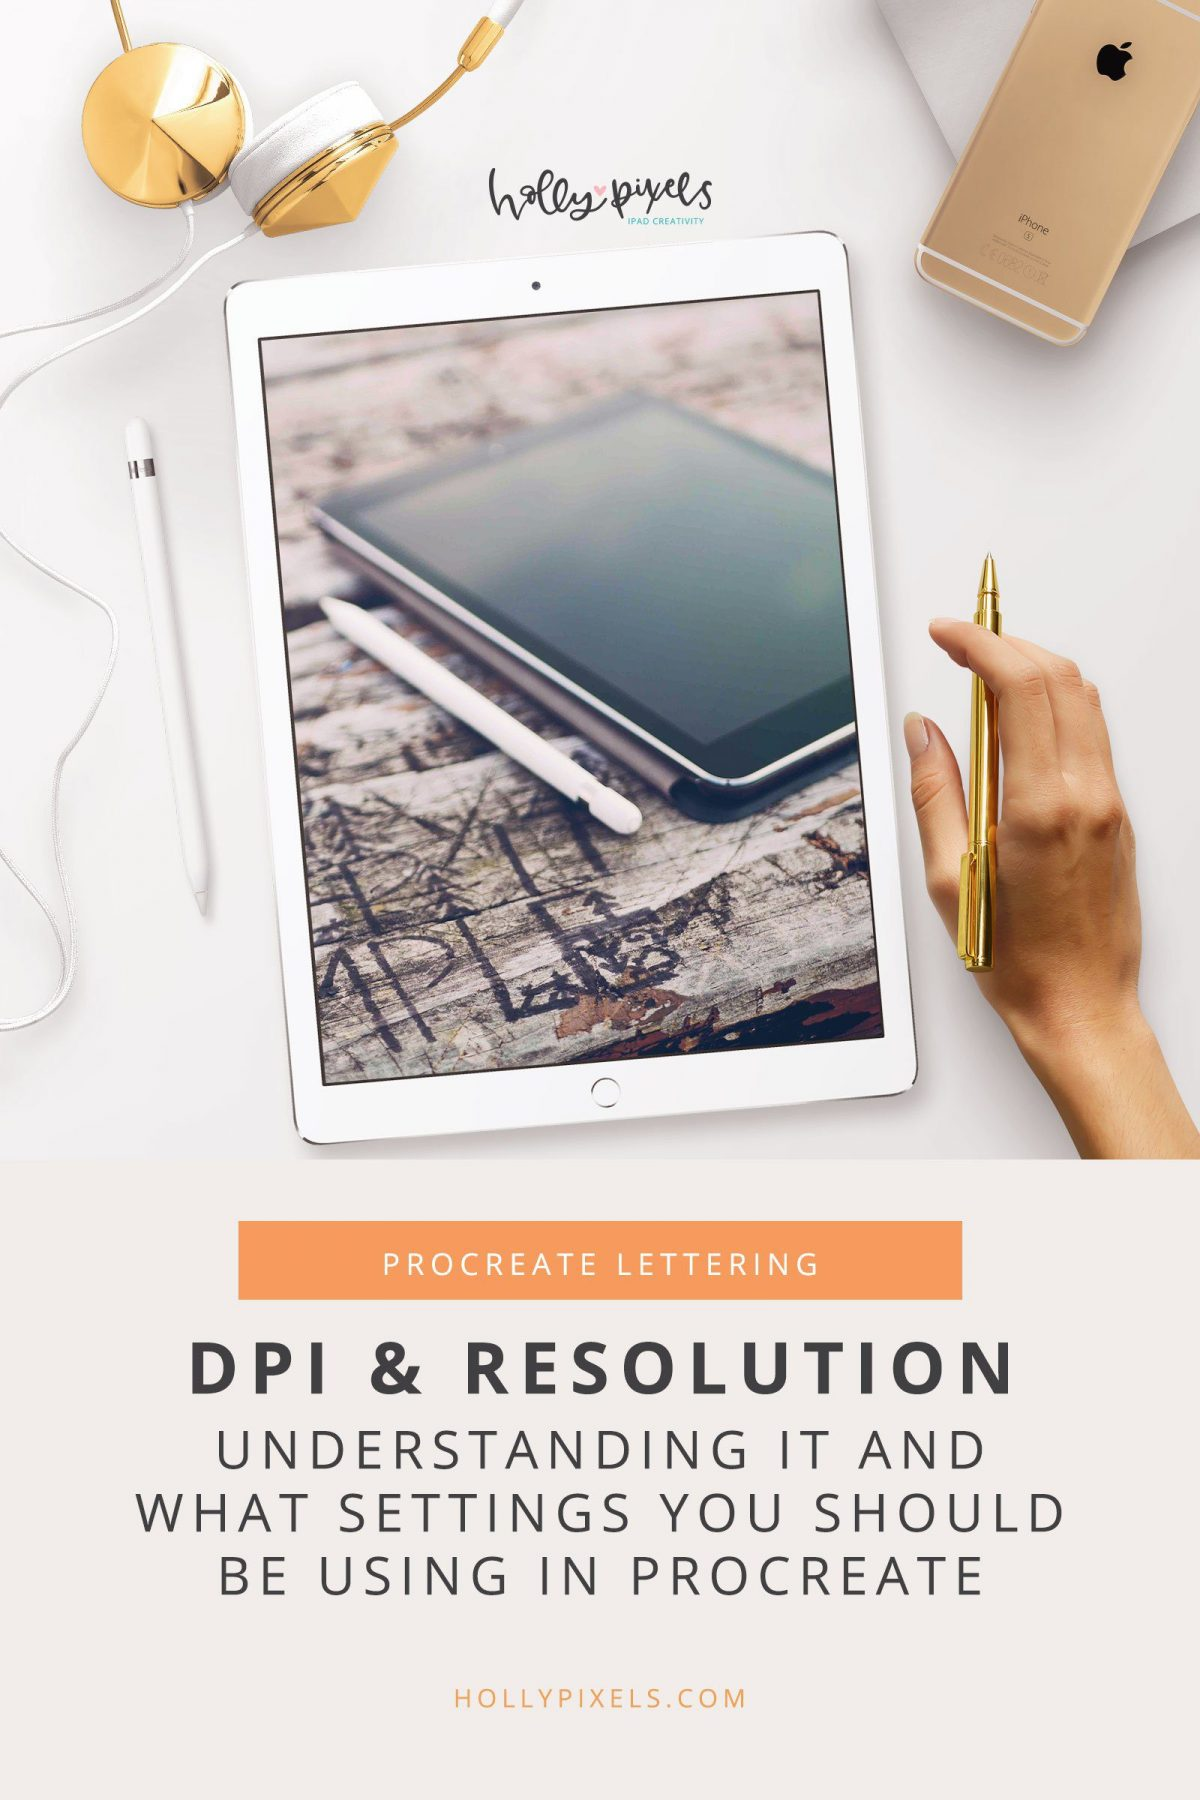 For this week's video I'm tackling the most common question I see asked by Procreate users that don't have a design background: What DPI should I use in Procreate?